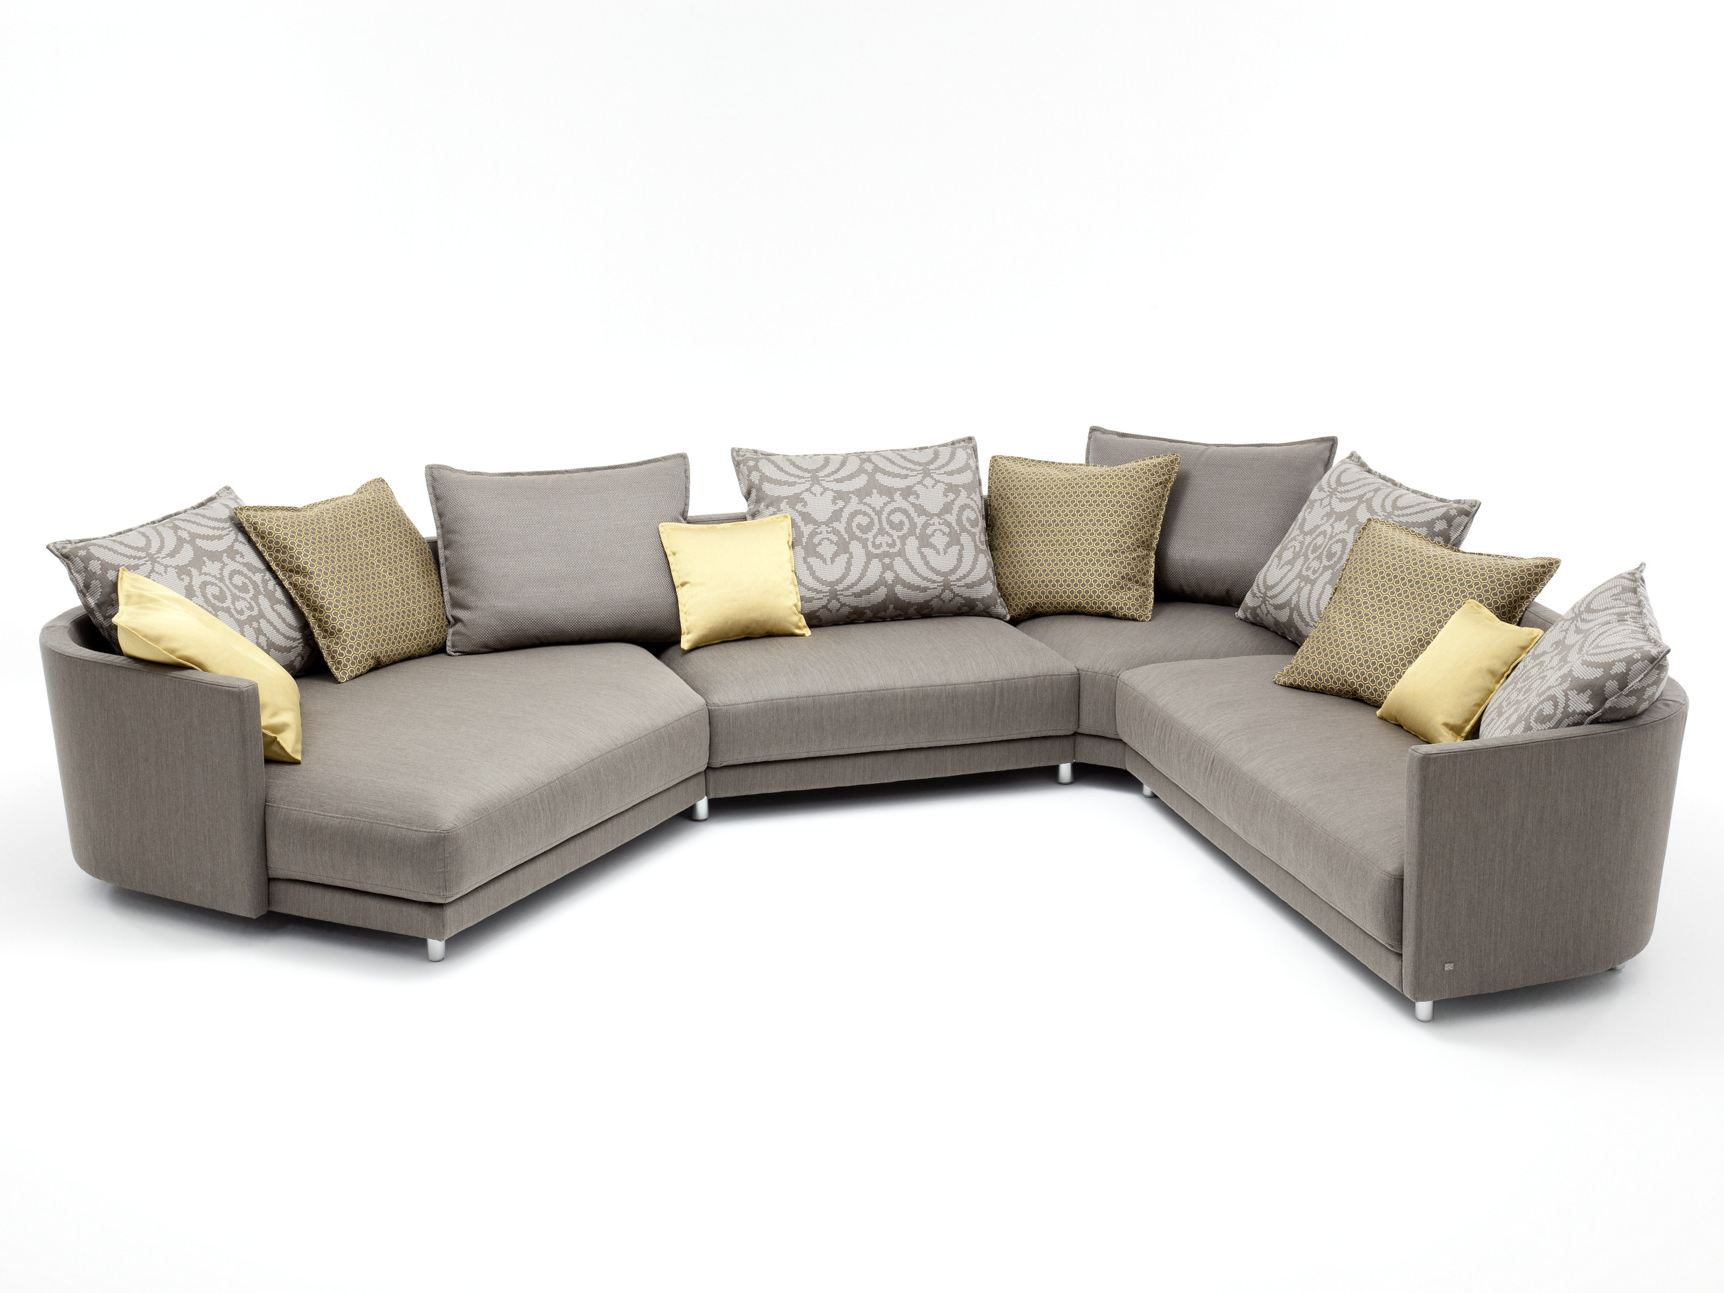 Ledersofa rolf benz  EGO | Corner sofa Ego Collection By Rolf Benz design Edgar Reuter